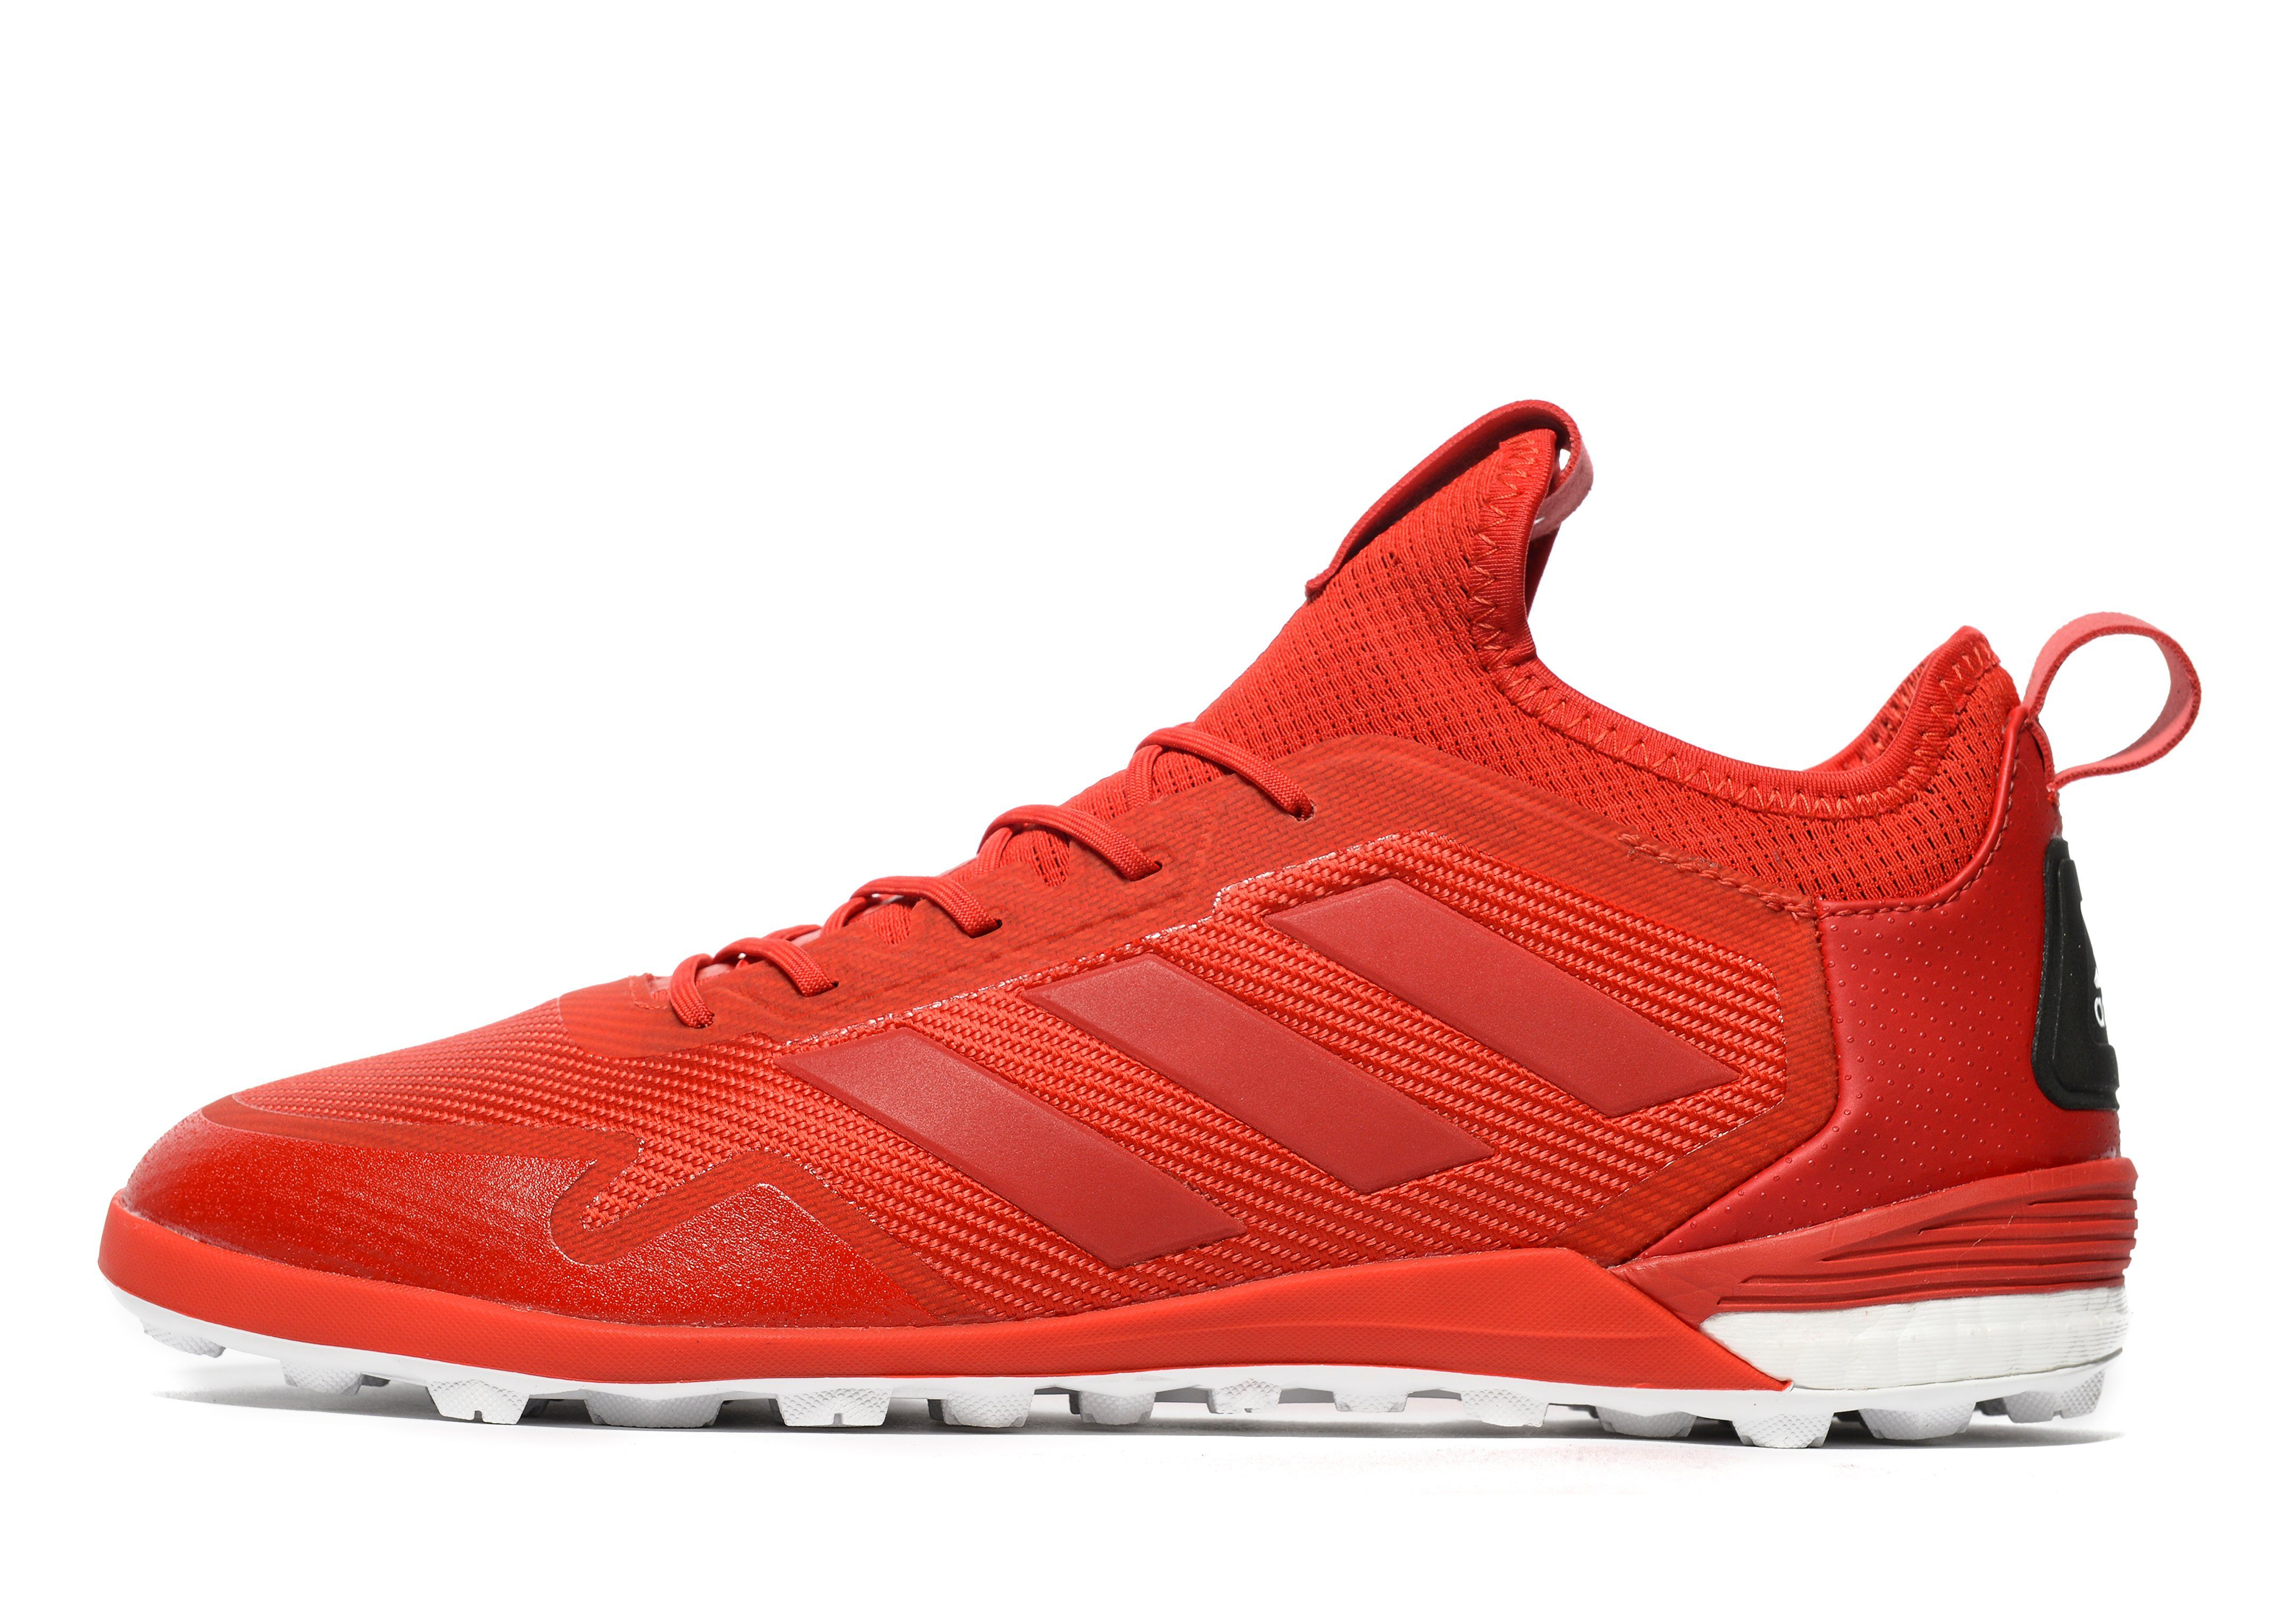 85% de descuento adidas rojo limitar as Tango TR Turf JD Sports